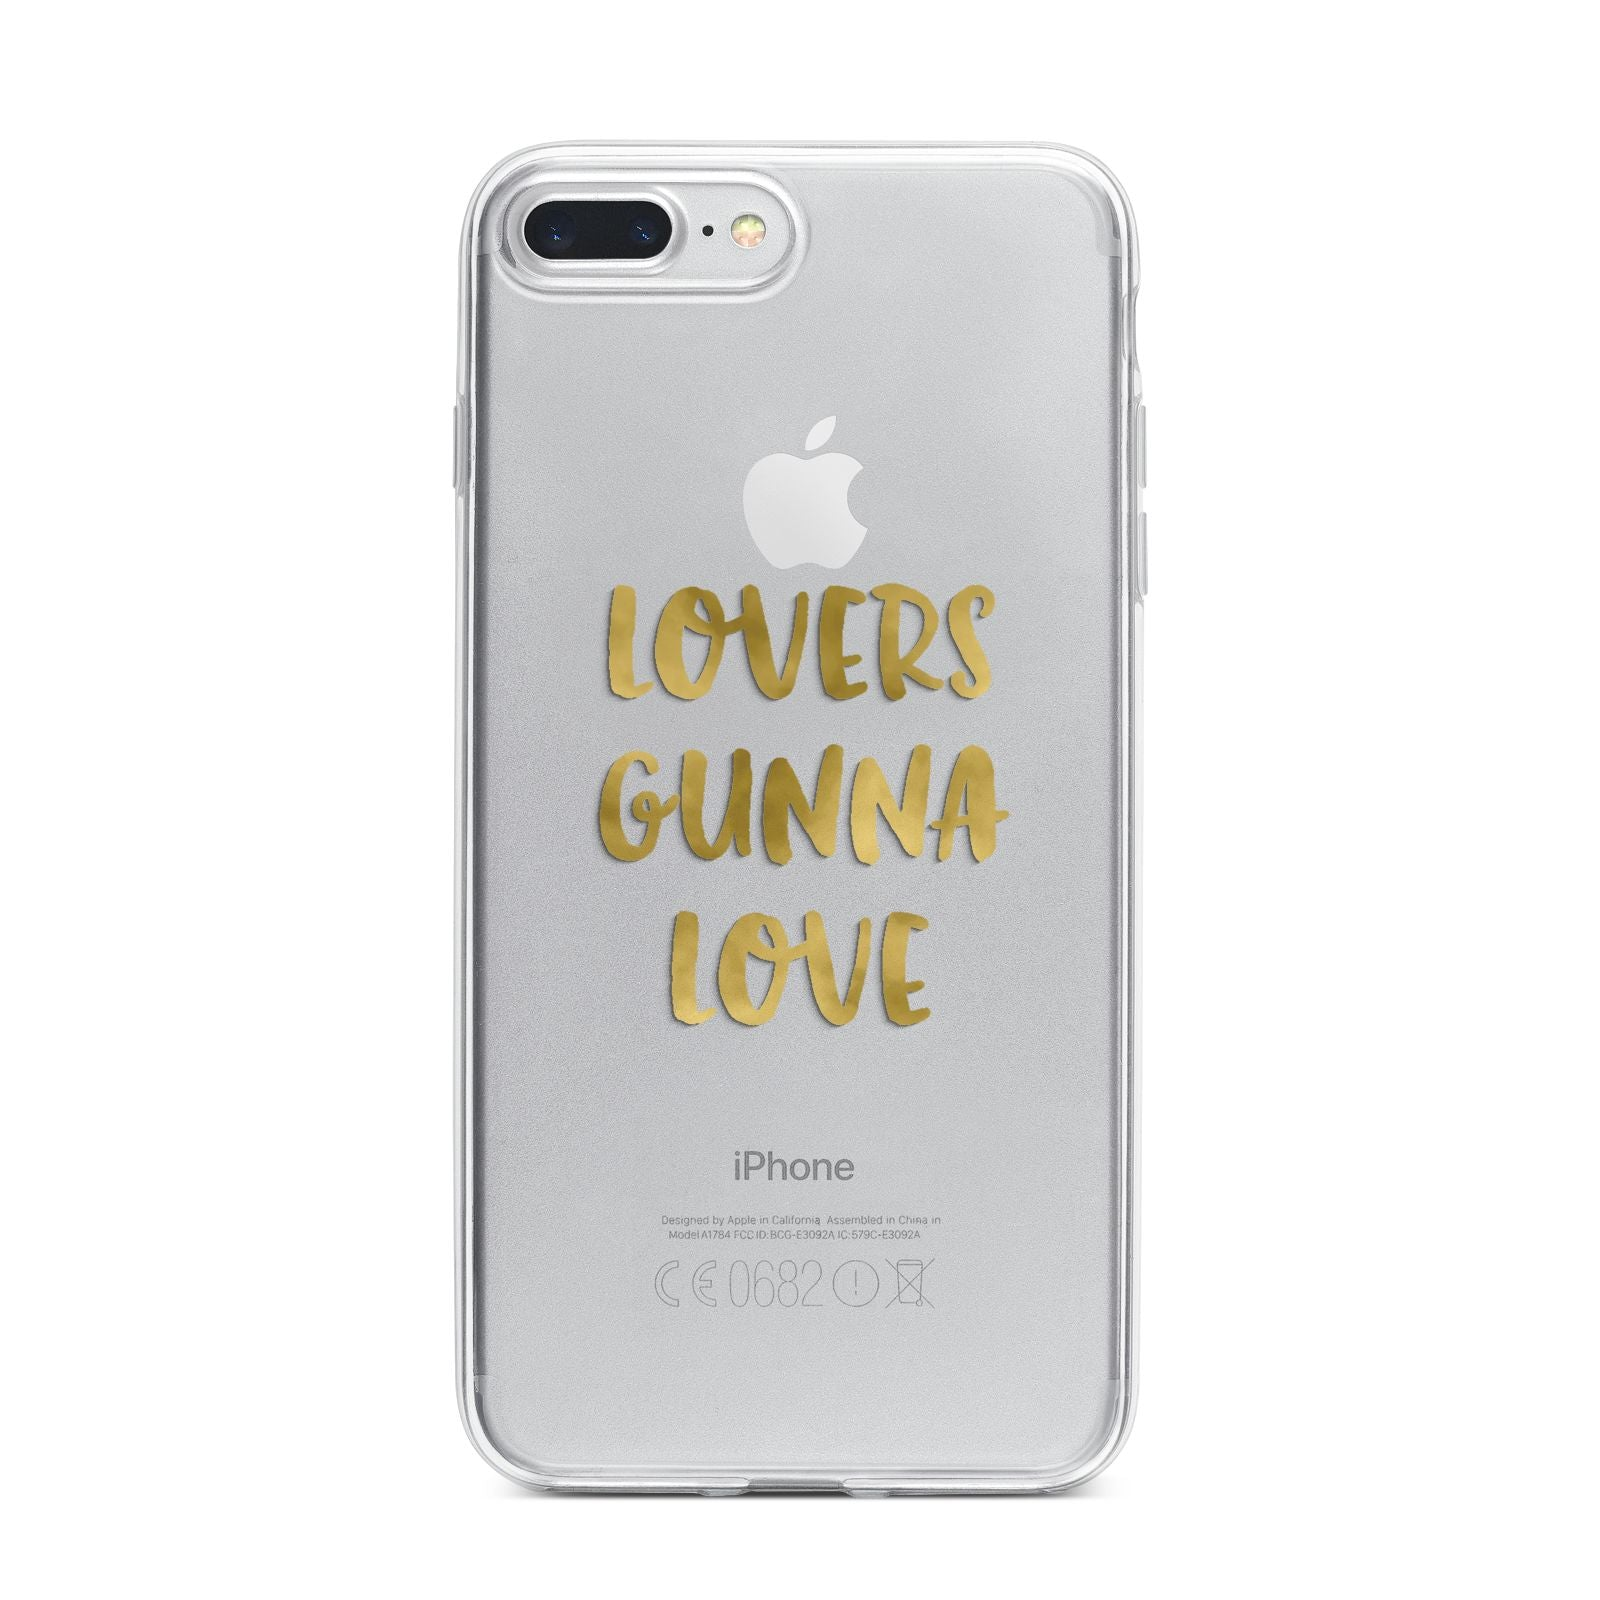 Lovers Gunna Love Real Gold Foil iPhone 7 Plus Bumper Case on Silver iPhone